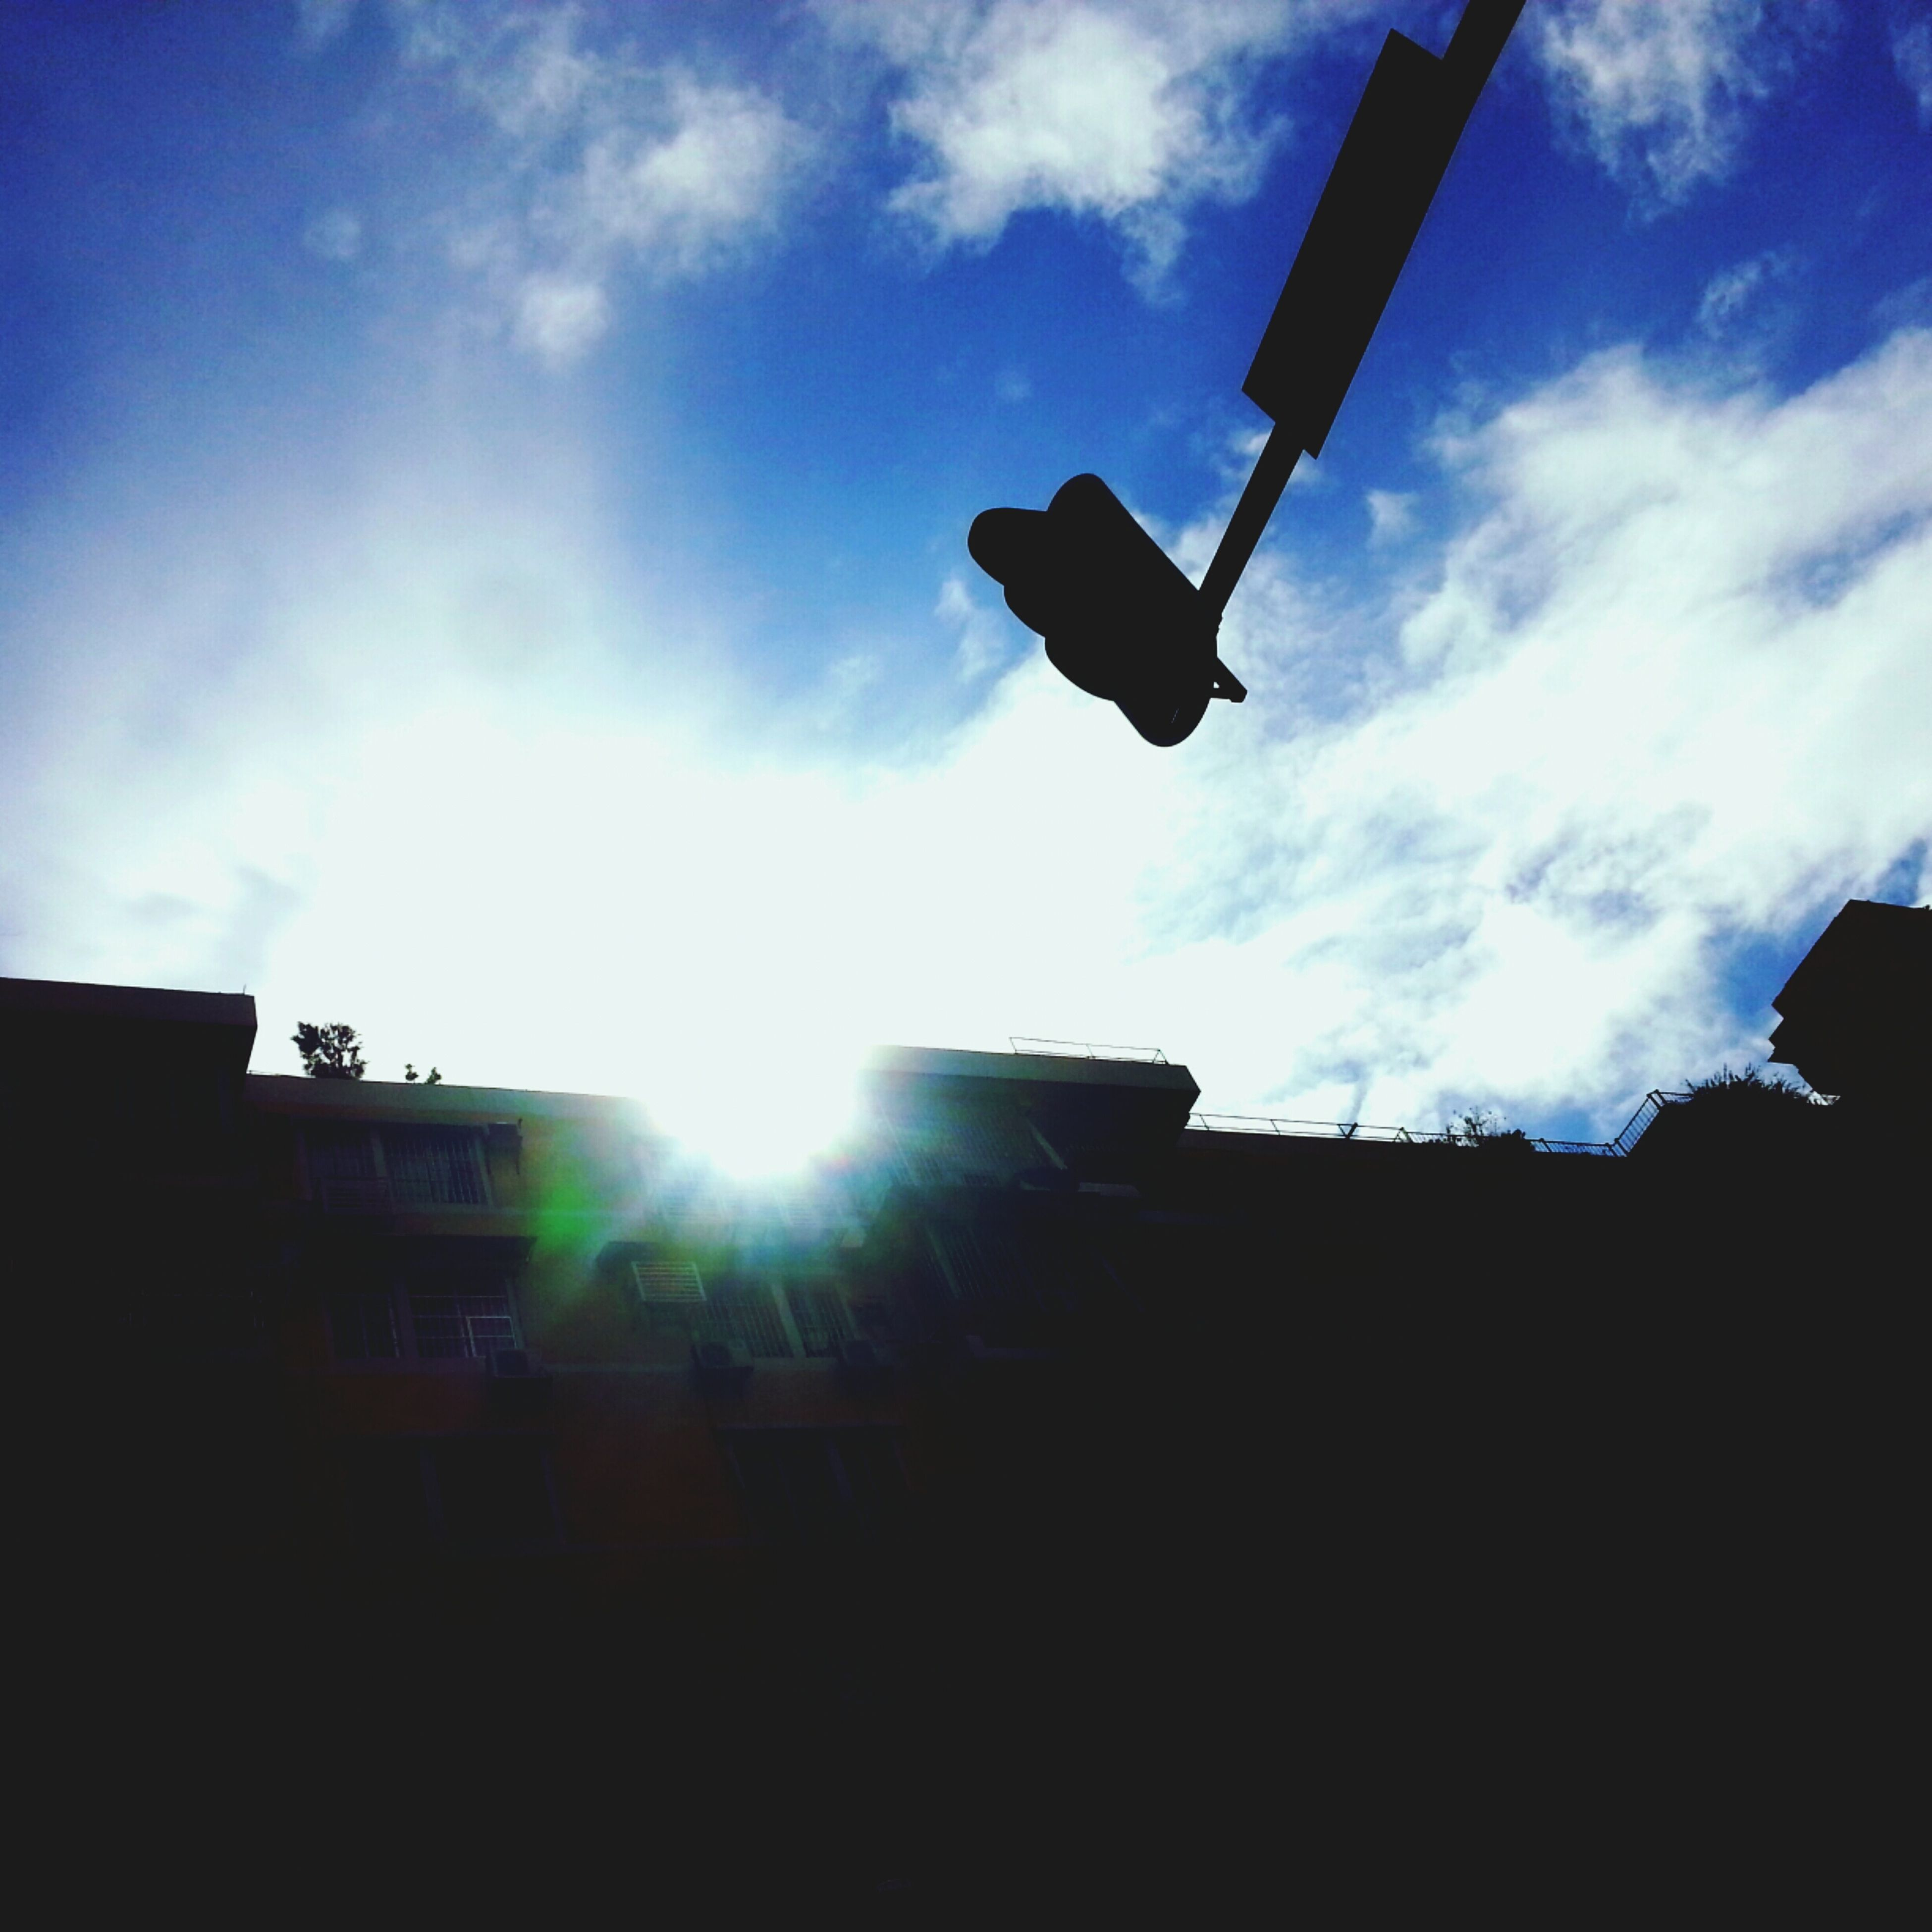 sun, sunbeam, silhouette, low angle view, sky, sunlight, lens flare, built structure, architecture, building exterior, cloud - sky, cloud, bright, back lit, sunny, day, outdoors, no people, nature, sunset